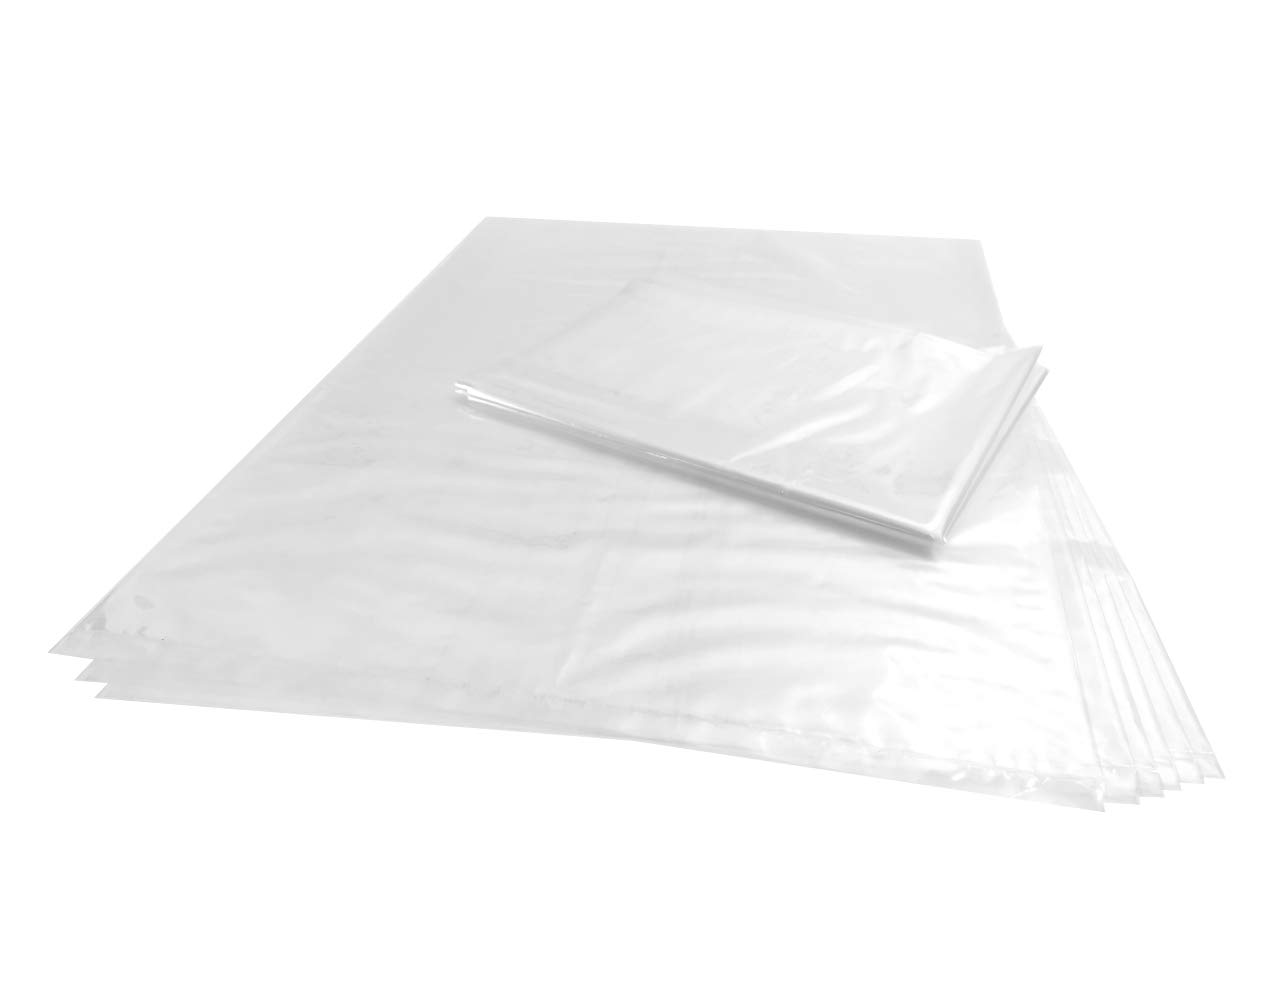 Wowfit 100 CT 18x24 inches 1 Mil Clear Plastic Flat Open Poly Bags Great for Proving Bread, Dough, Storage, Packaging and More (18 x 24 inches)